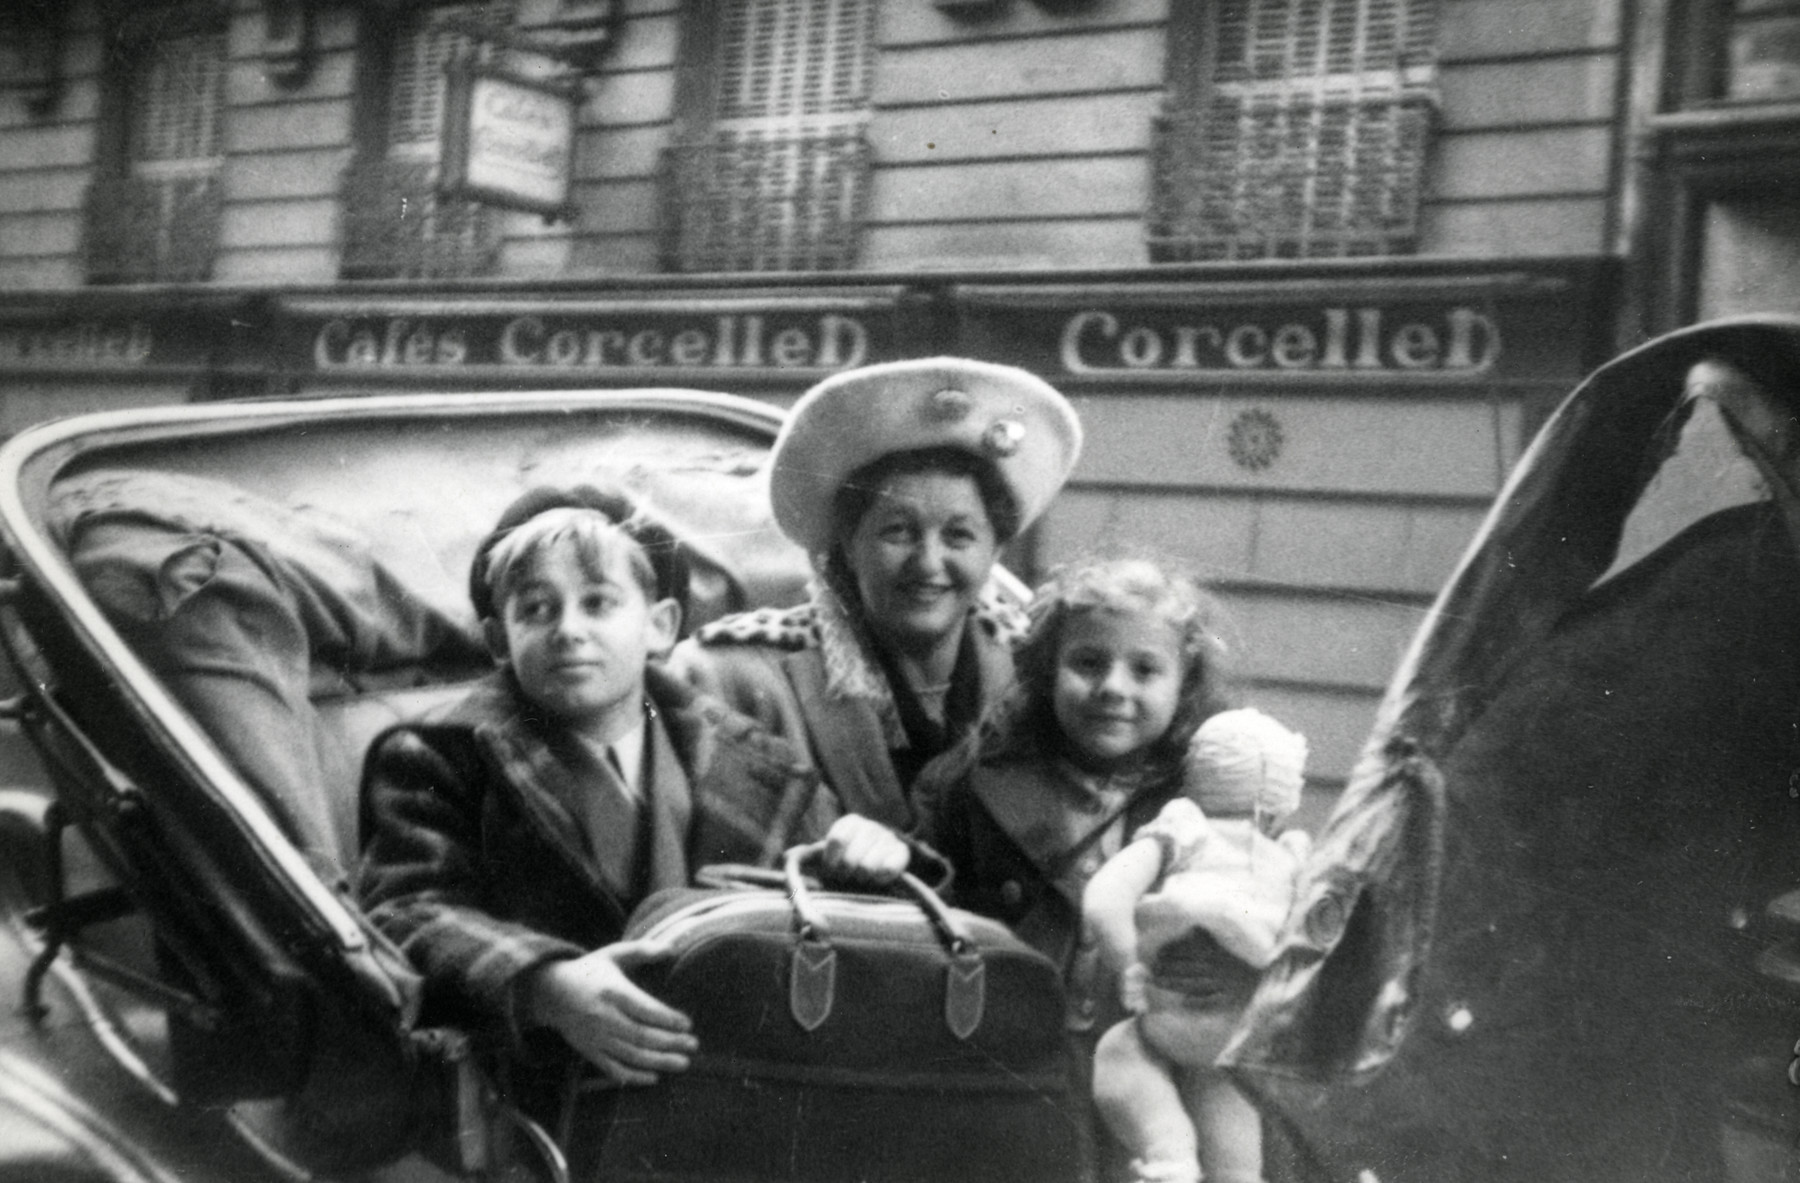 Gerdie Gartenberg takes her two newly adopted children, Ewa and Jacob, in a carriage ride through Paris prior to bringing them to the States.